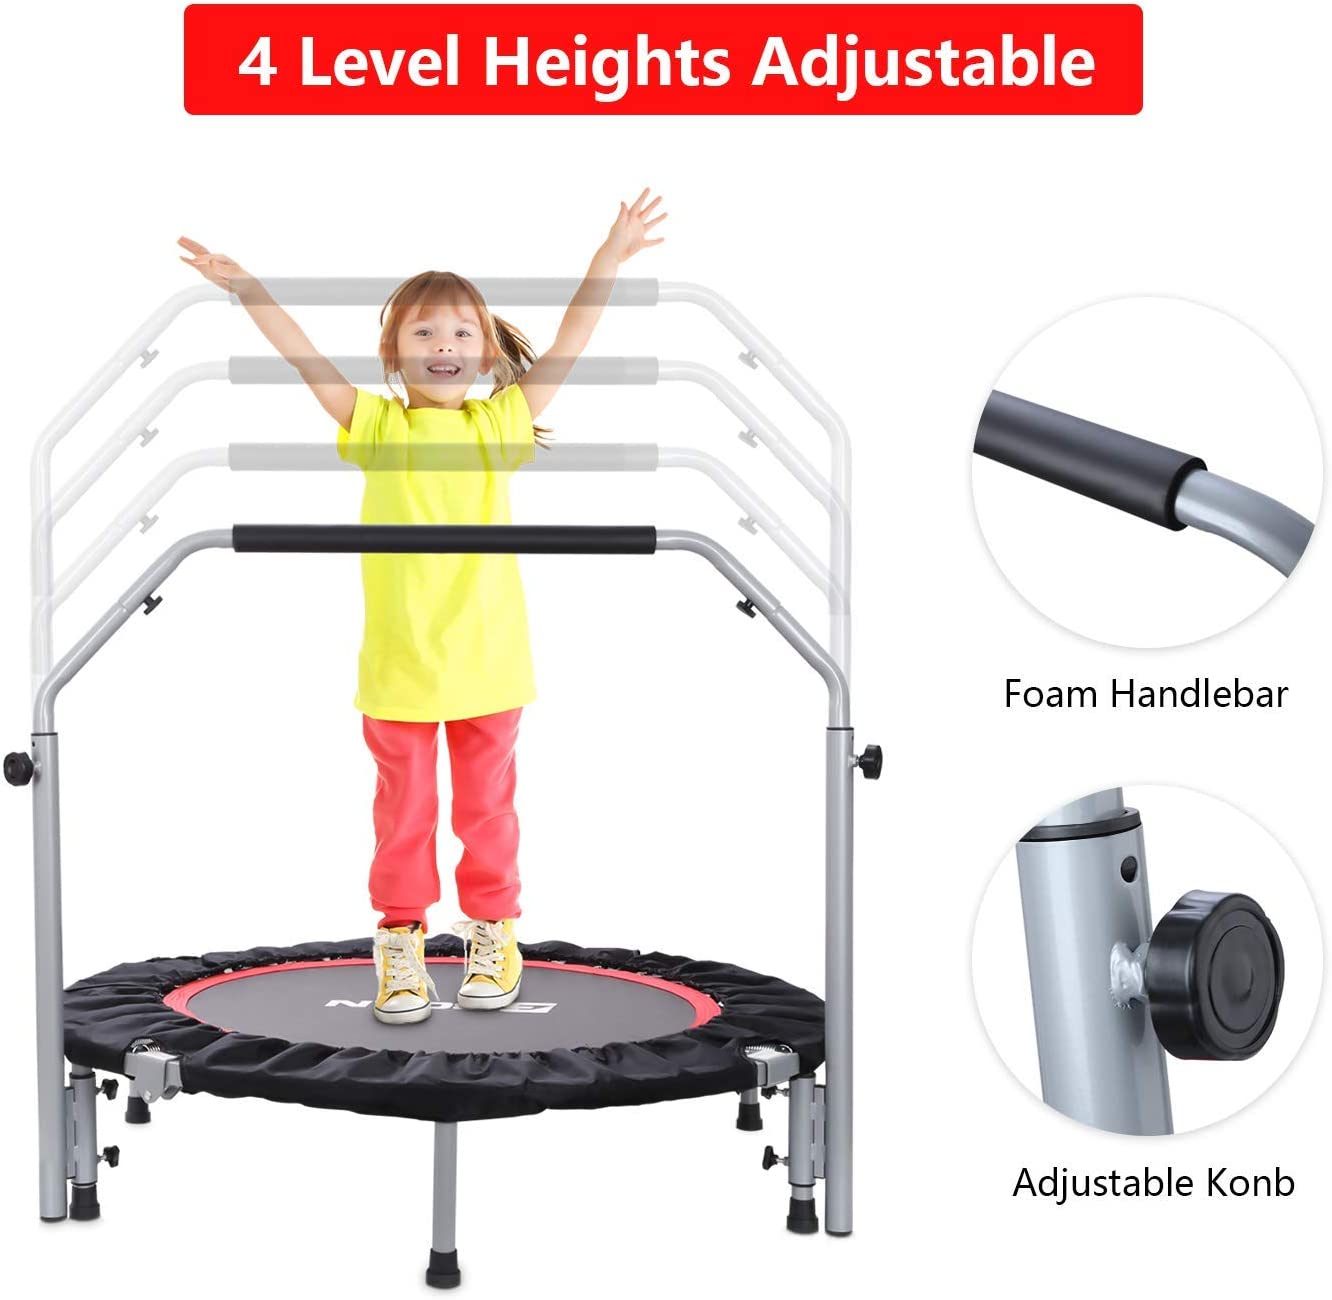 BCAN 40 Foldable Mini Trampoline, Fitness Rebounder with Adjustable Foam Handle, Exercise Trampoline for Kids Adults Indoor Garden Workout Max Load 330lbs